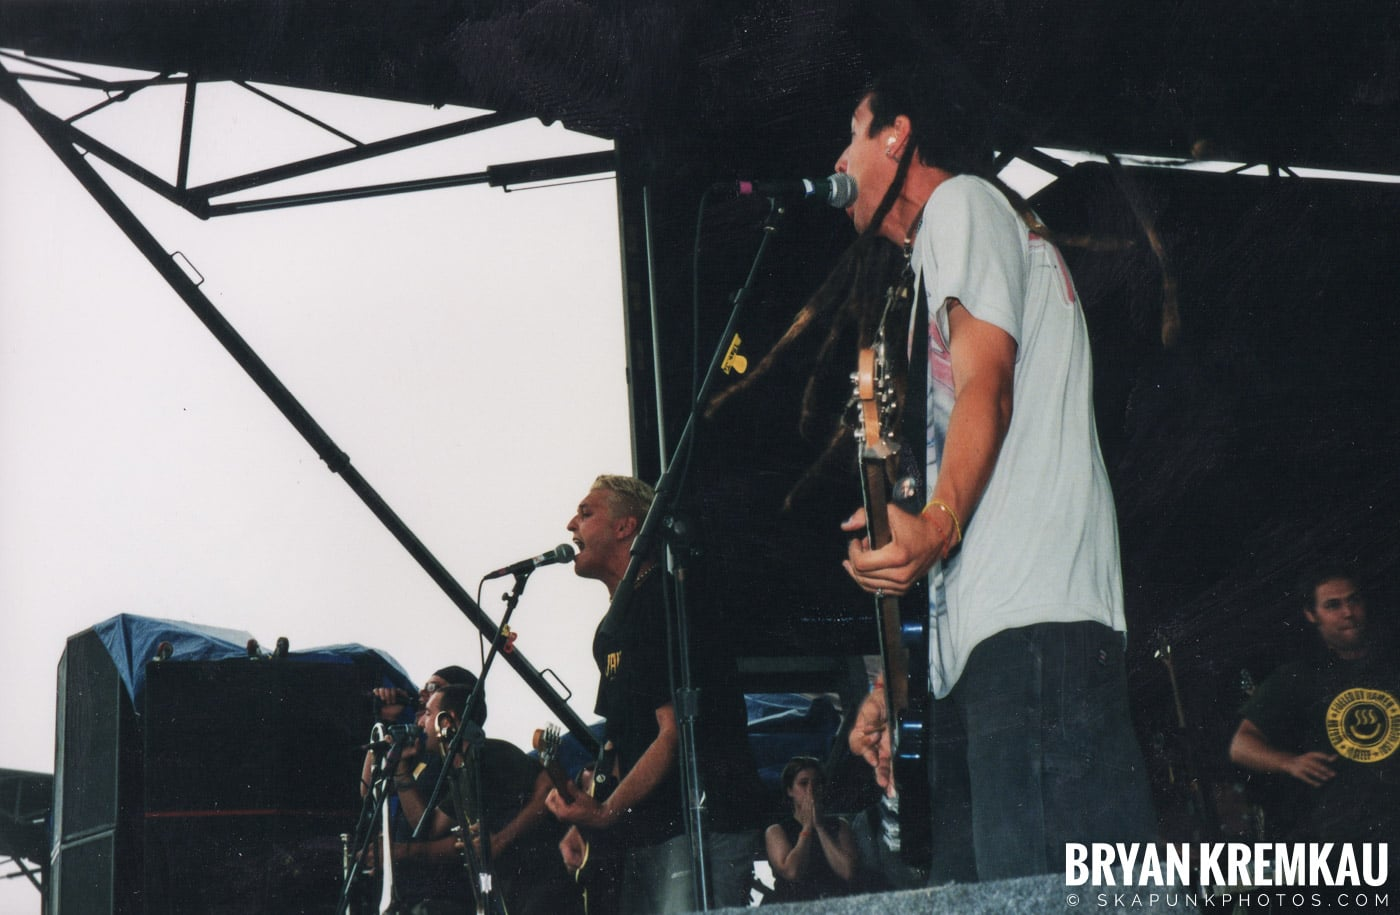 Less Than Jake @ Vans Warped Tour, Randall's Island, NYC - 8.4.01 (3)